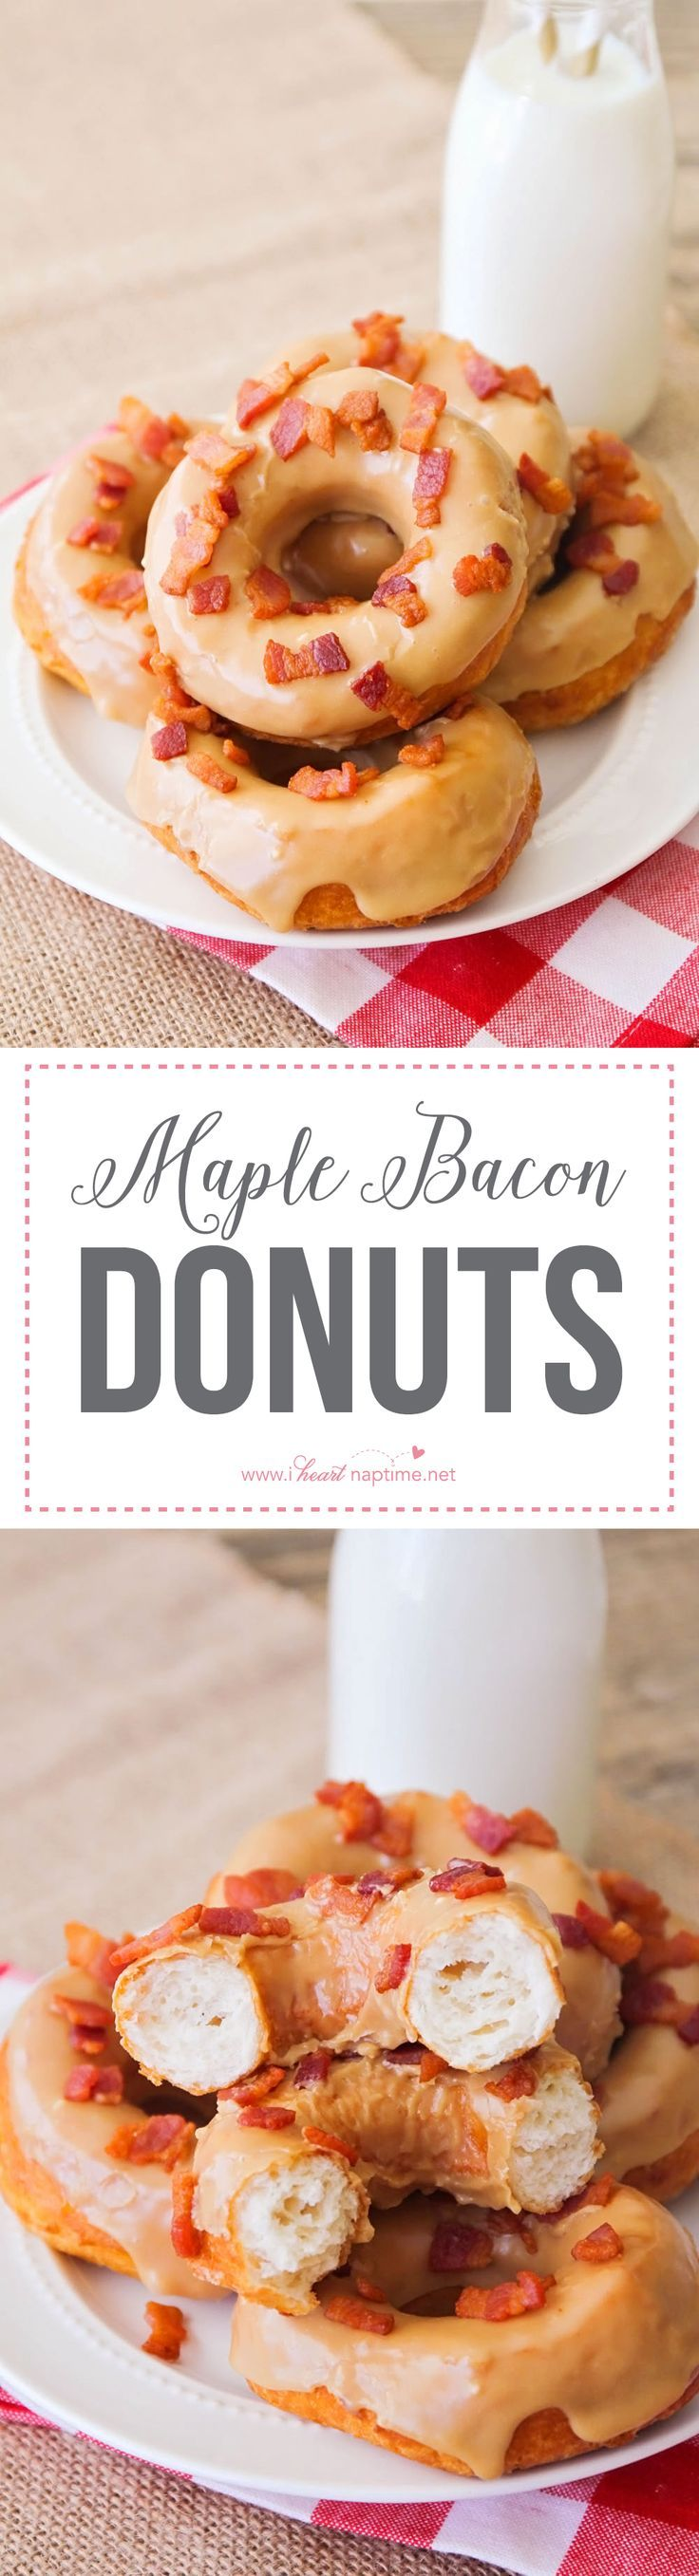 Maple bacon donuts - these delicious sweet and savory donuts are so easy to make and ready in under thirty minutes!